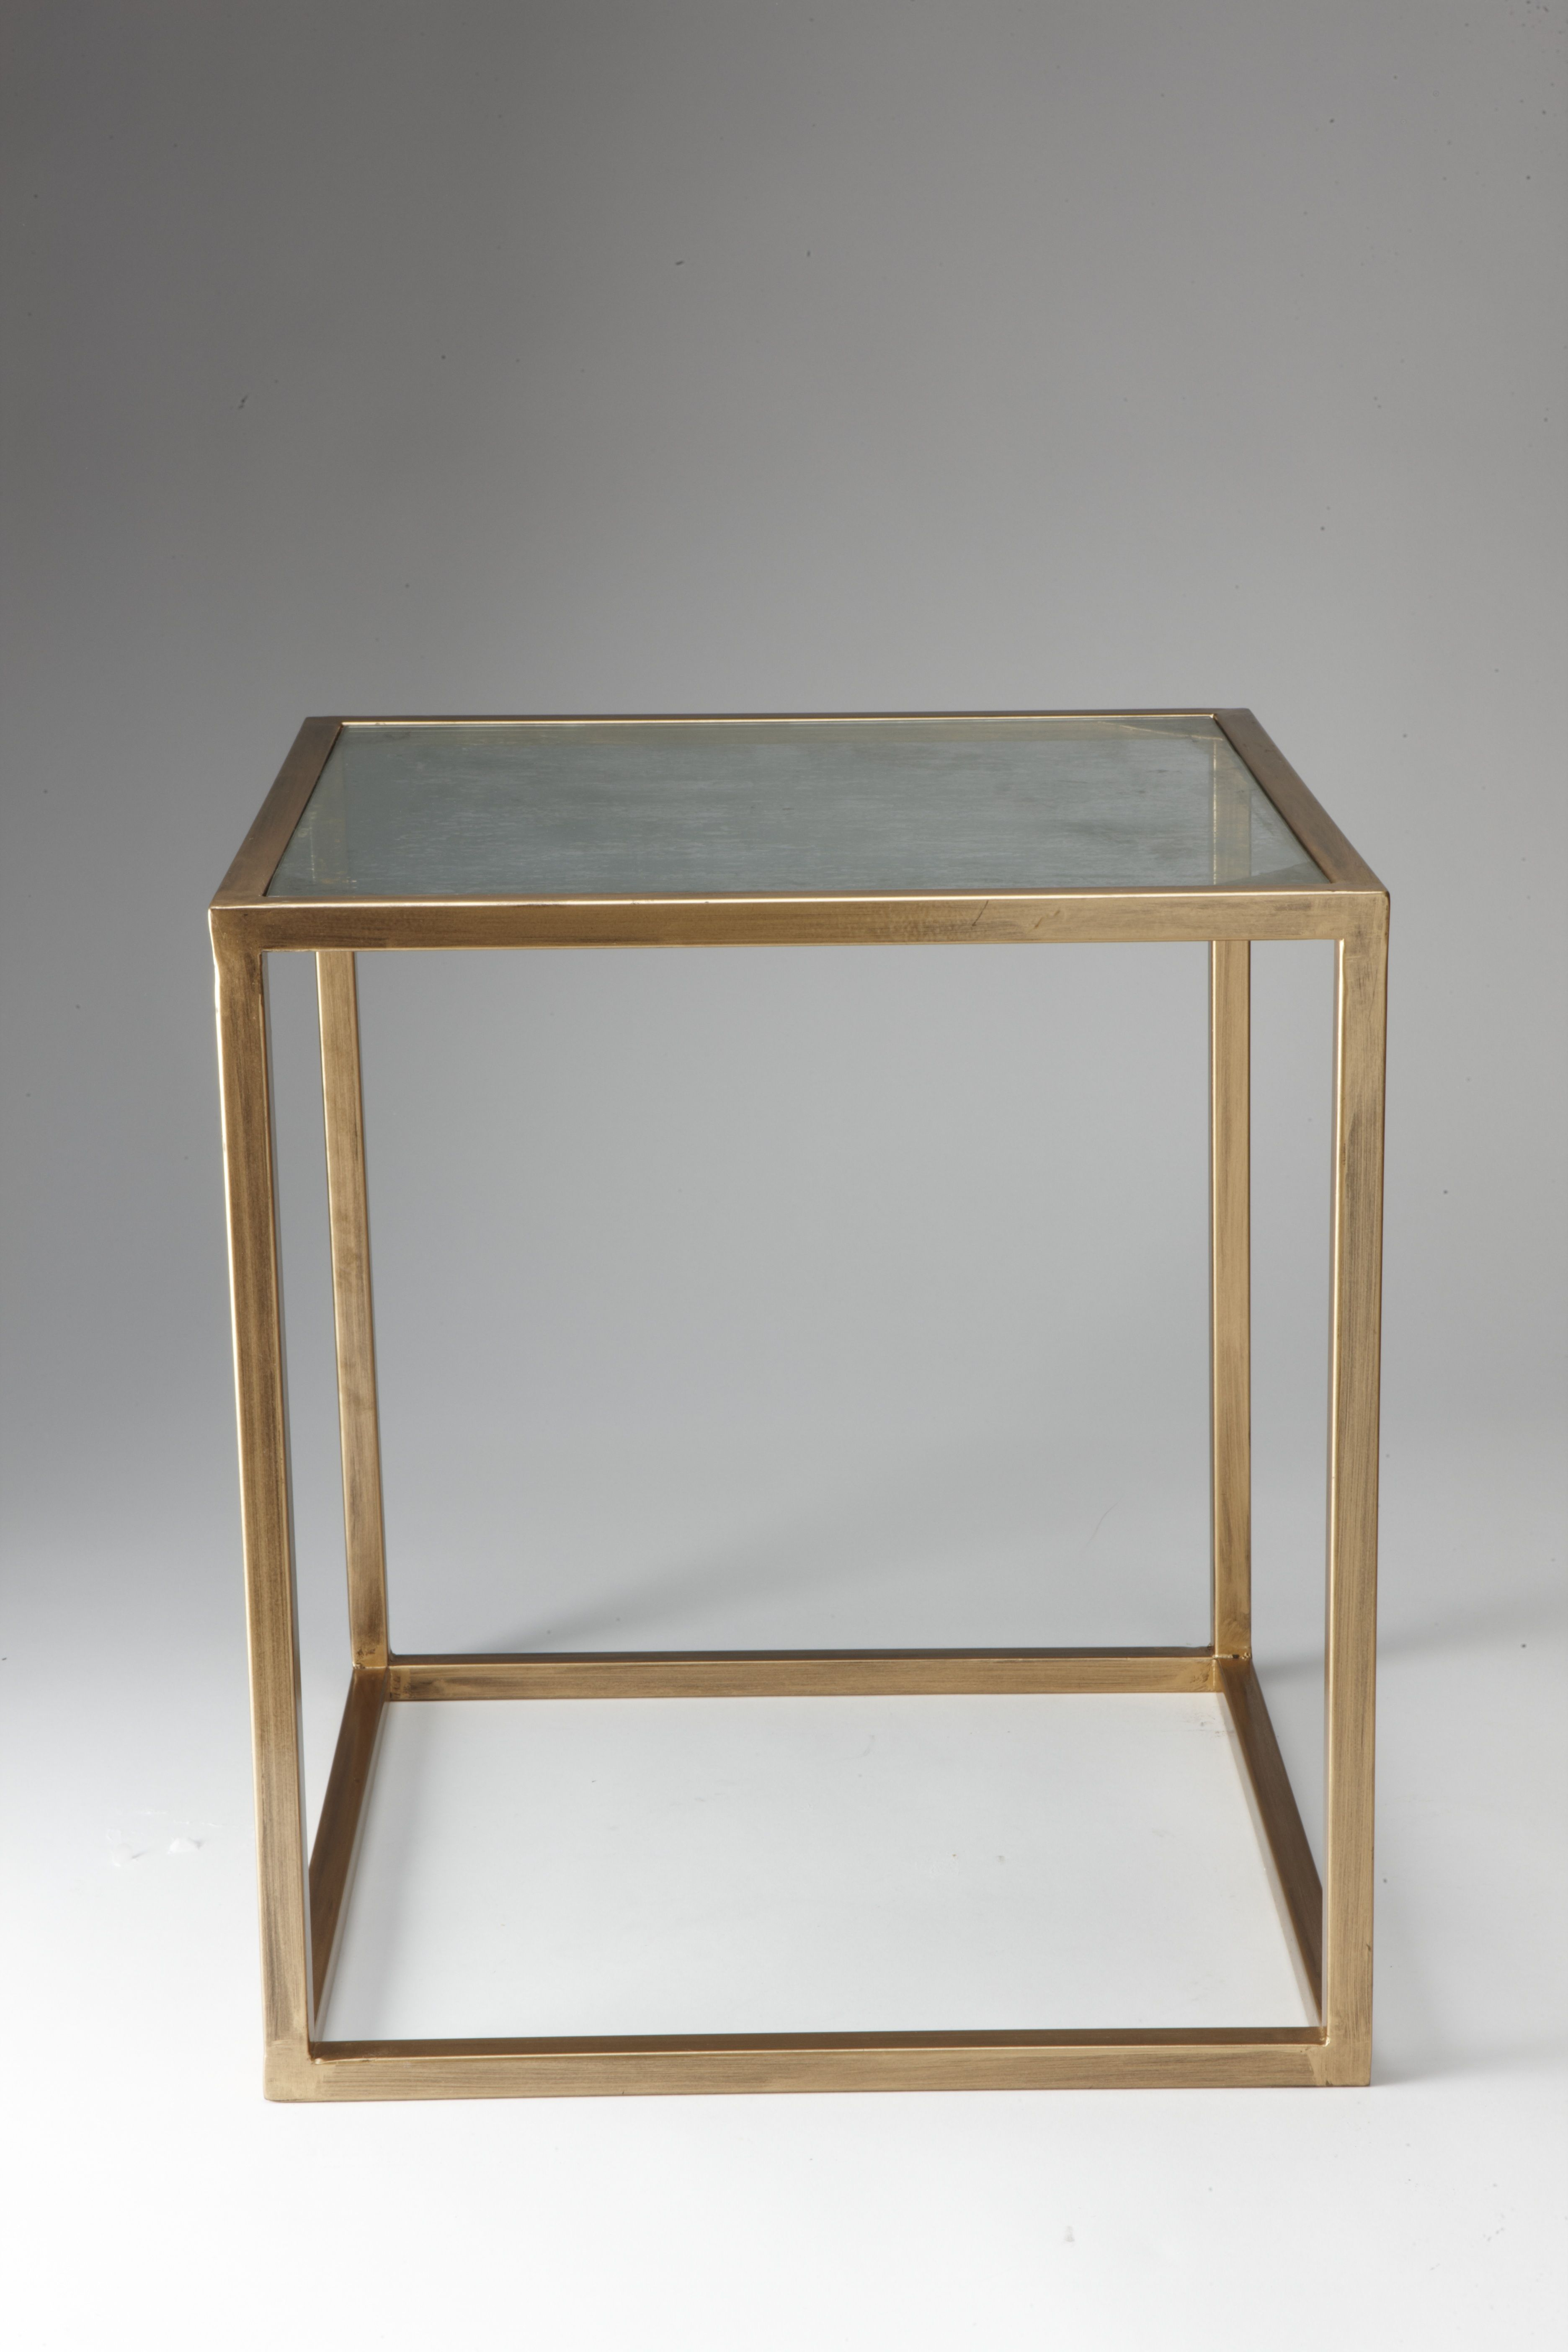 nate berkus accent table gold and antiqued glass antique expandable dining skinny runner coffee with chairs under end tables storage space small square tablecloth tool chest tools